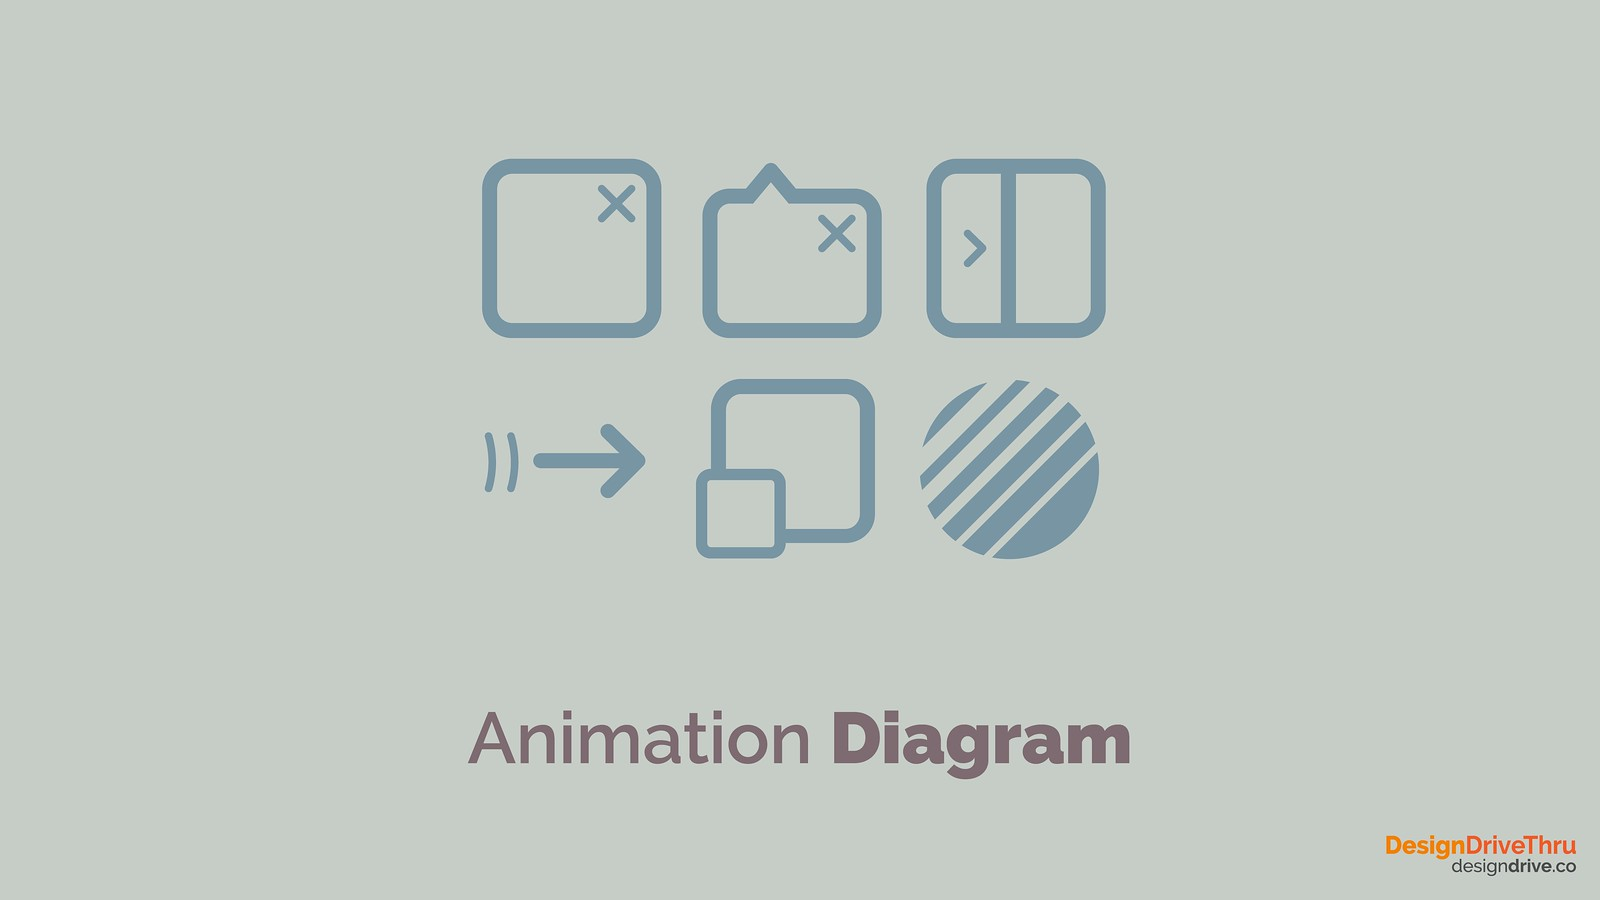 Animation Diagram Cover